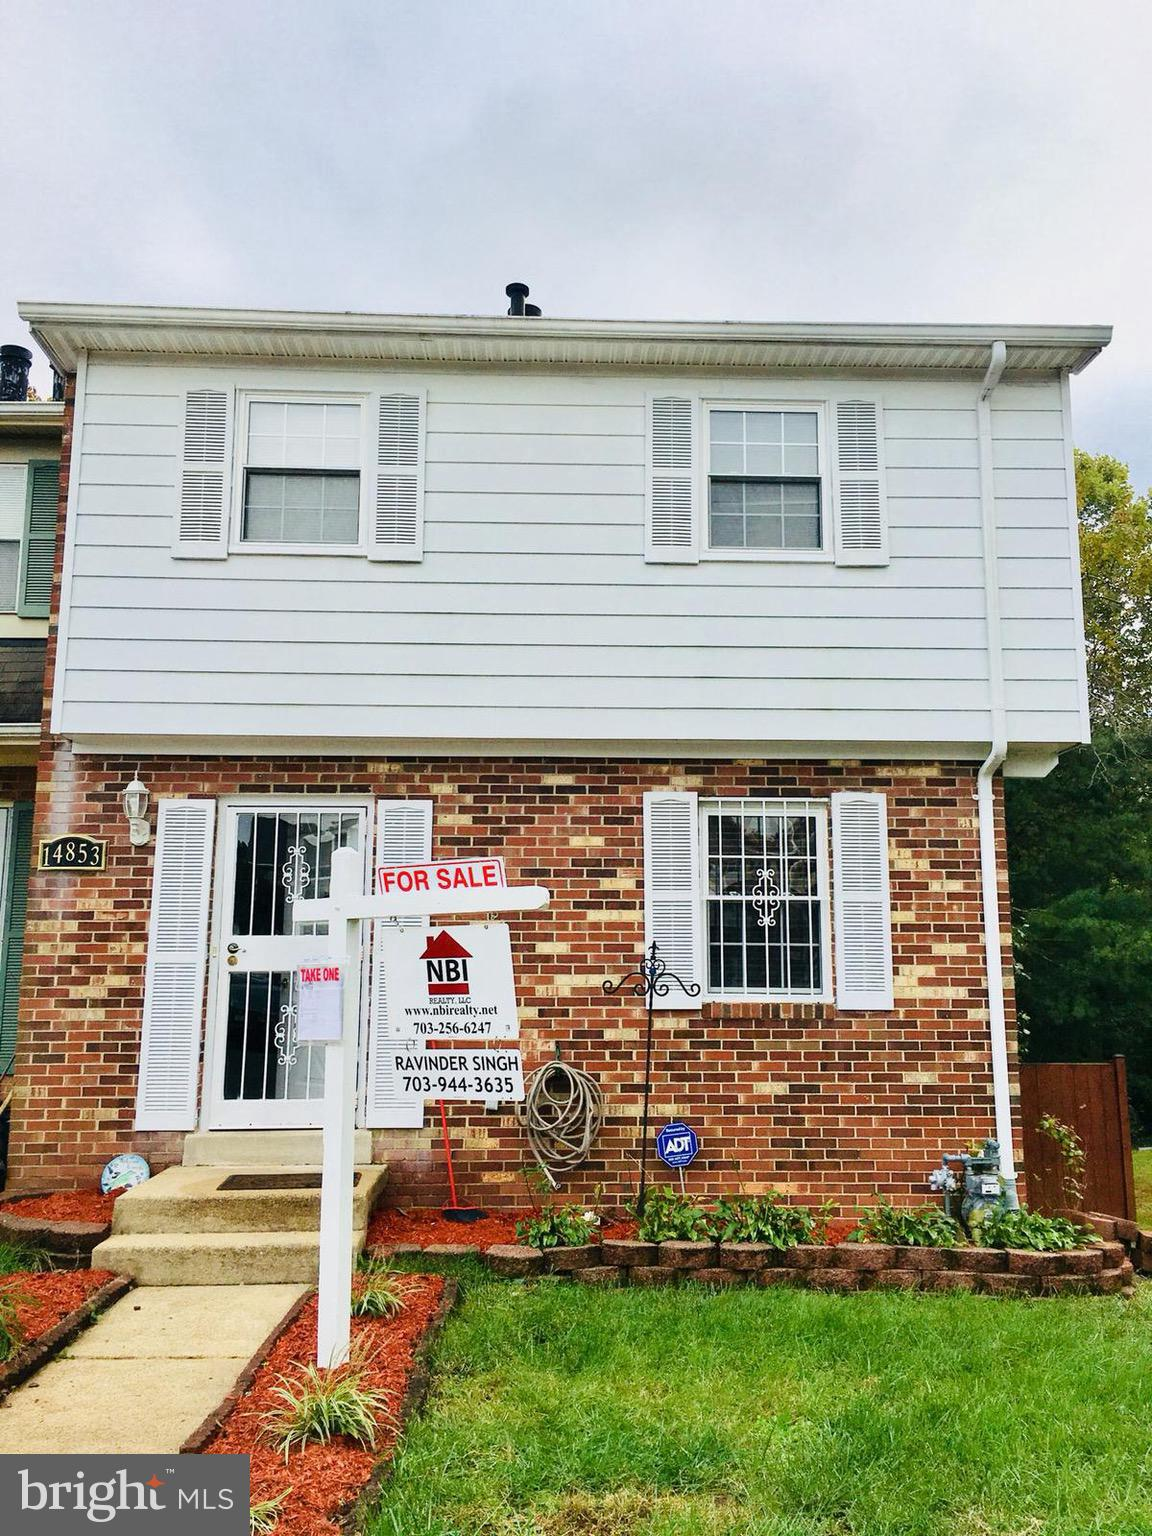 Back on the Market !!Truly Awesome property, Fully renovated and upgraded 3 finished level end unit townhouse with walk out finished basement. Stainless steel appliances, Brick Patio, shed backing to trees and many more. Thanks for showing!!!